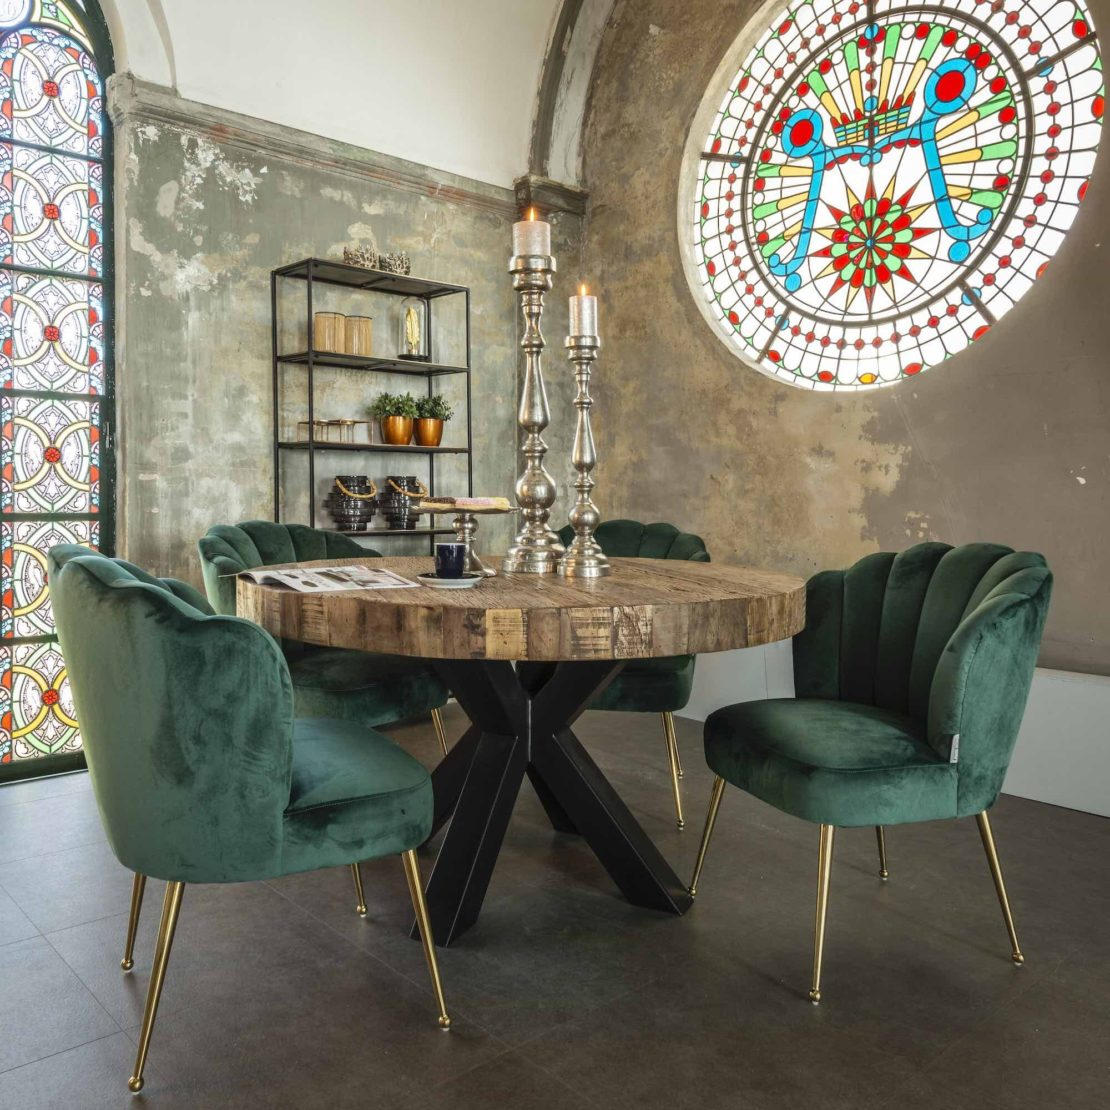 transition style trend, mixture of old and new, chapel with stained glass with modern, recycled wood table and scalloped velvet chairs